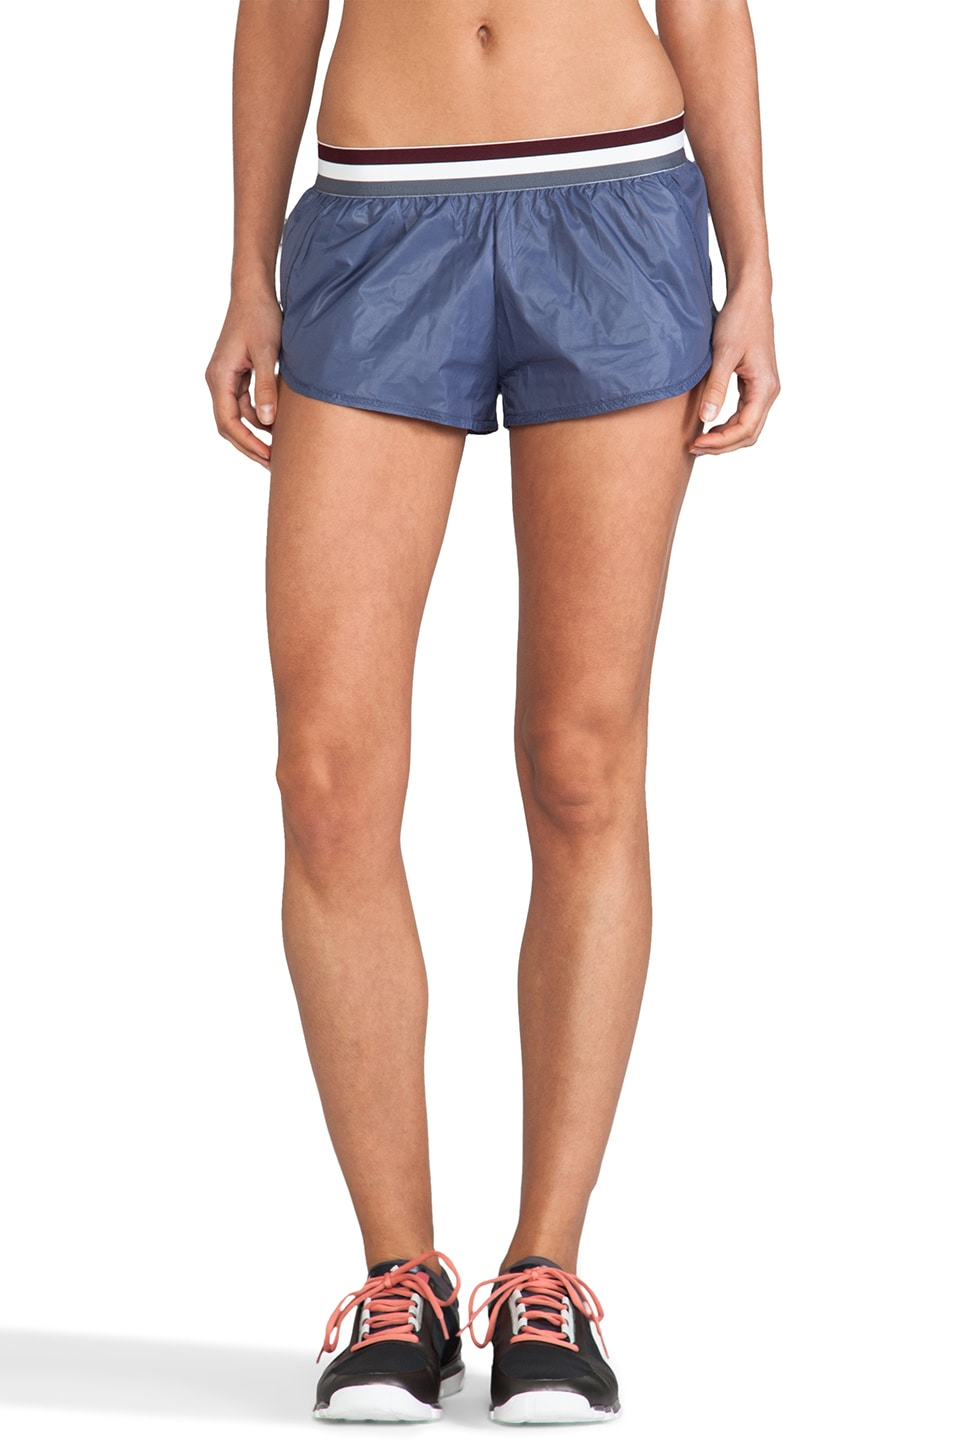 adidas by Stella McCartney Stu Short in Dark Atlantic